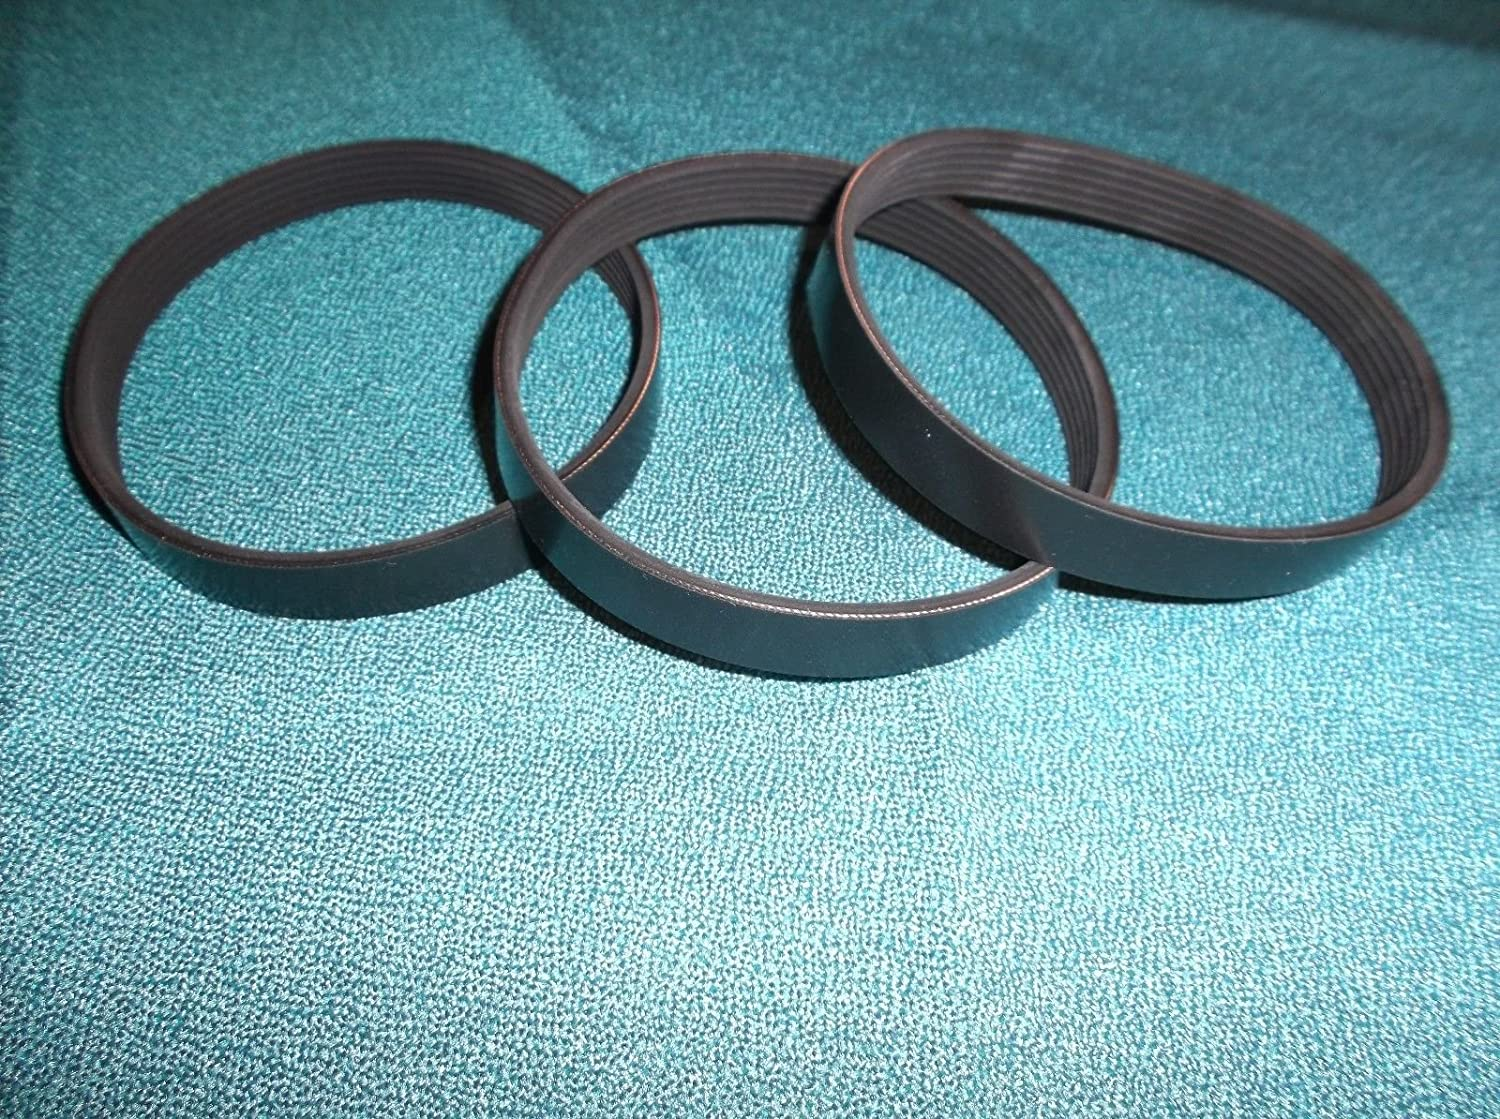 """NEW DRIVE BELT MADE IN USA REPLACES 1860006 RYOBI 13/"""" THICKNESS PLANER BELT"""